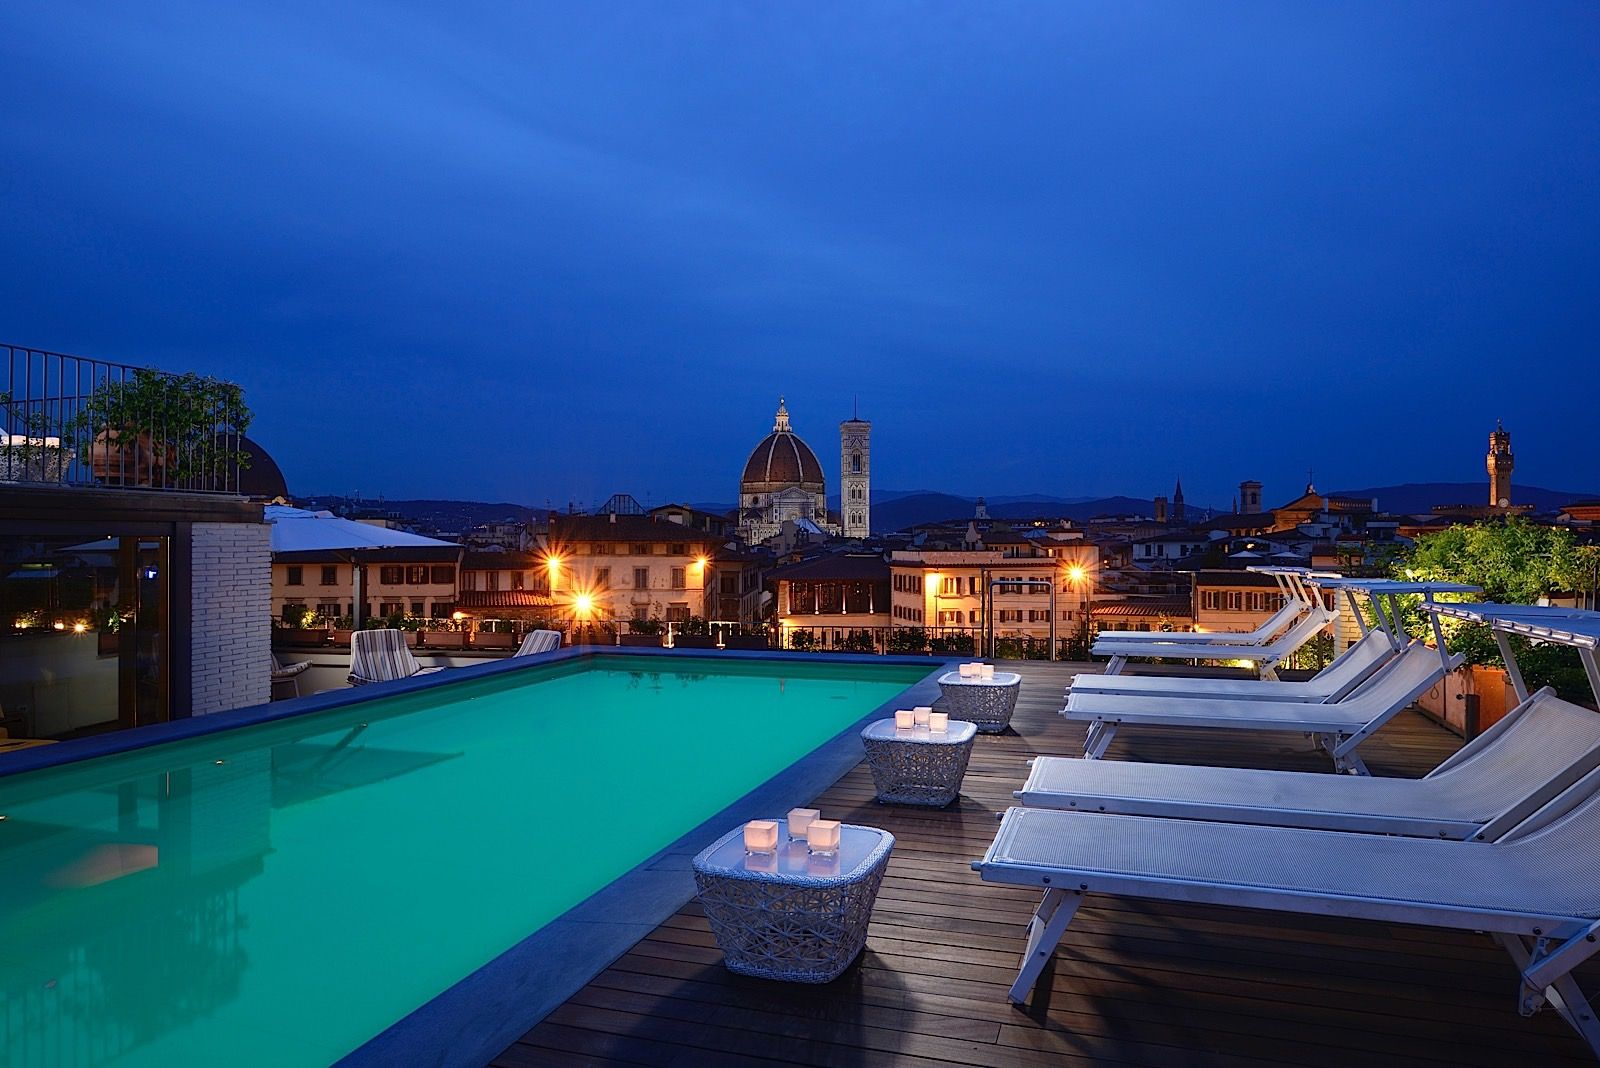 Pin By Mam Mam On Ideas For House To Book Florence Hotels Grand Hotel Tuscany Italy